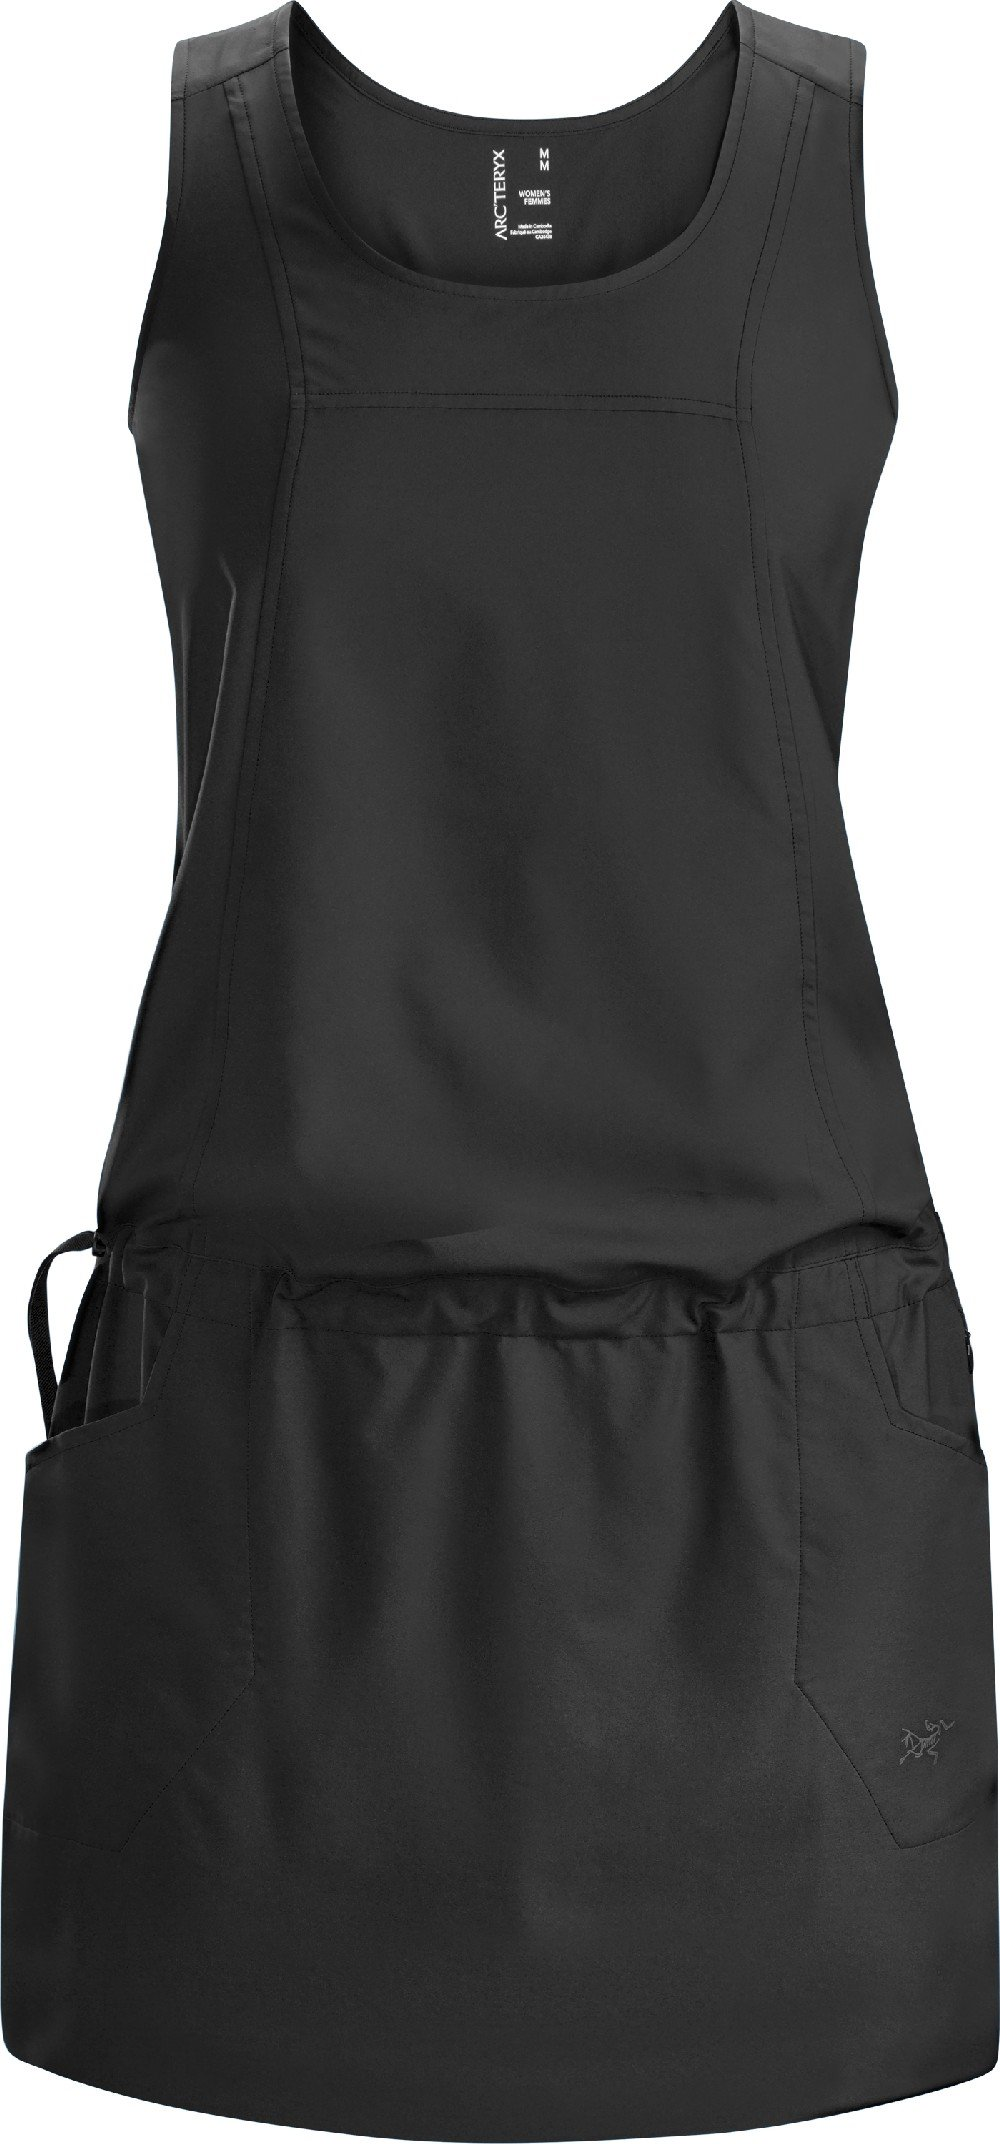 ARC'TERYX Contenta Dress Women's (Black, Medium)